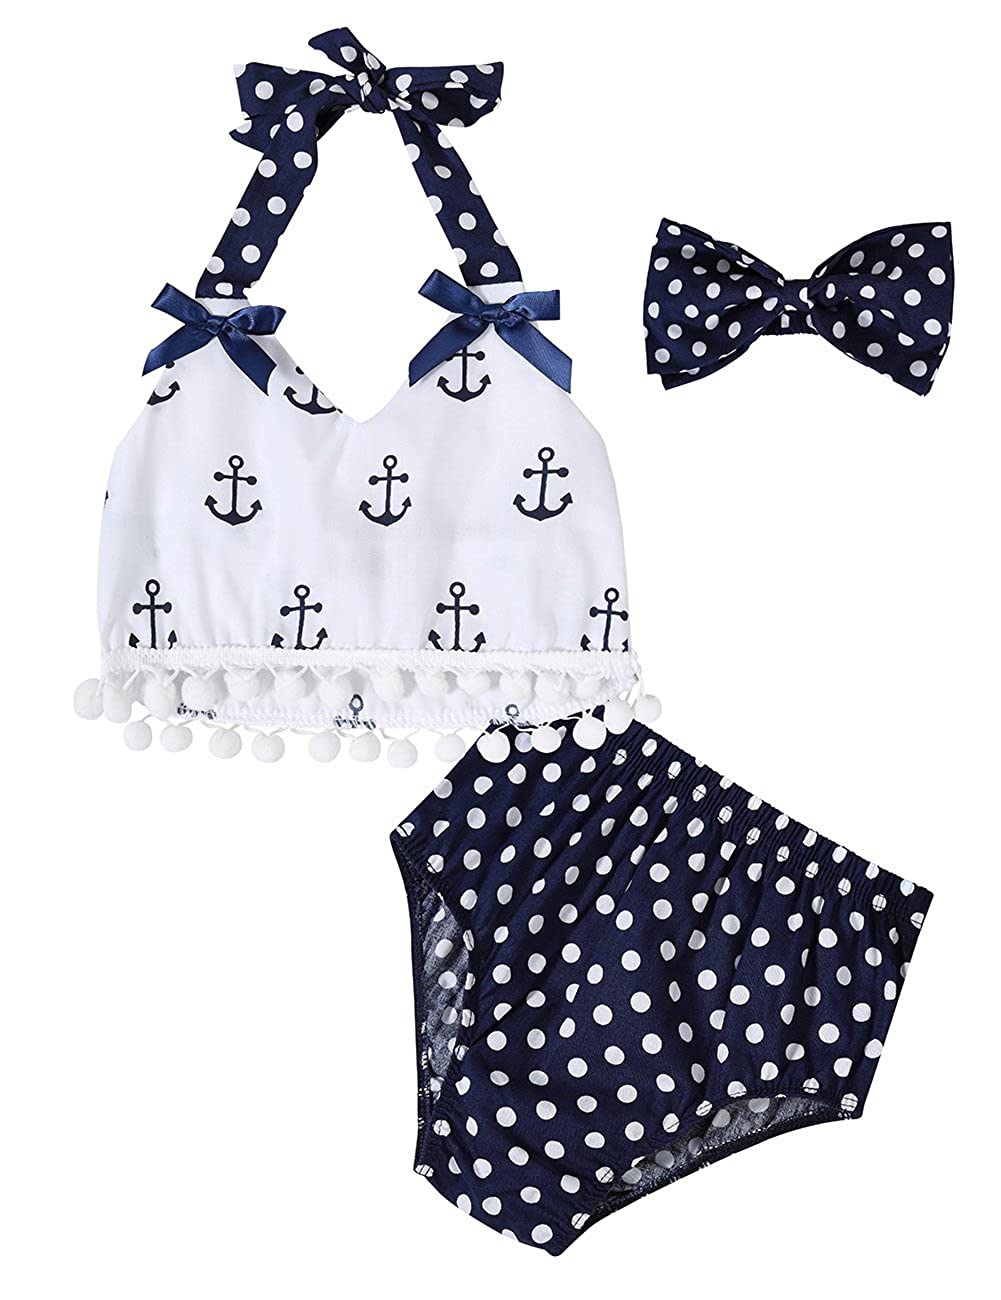 Gprince Infant Baby Girls Clothes Tops Polka Dot Briefs Outfits Set Sunsuit JF-lcl20170605-4-01